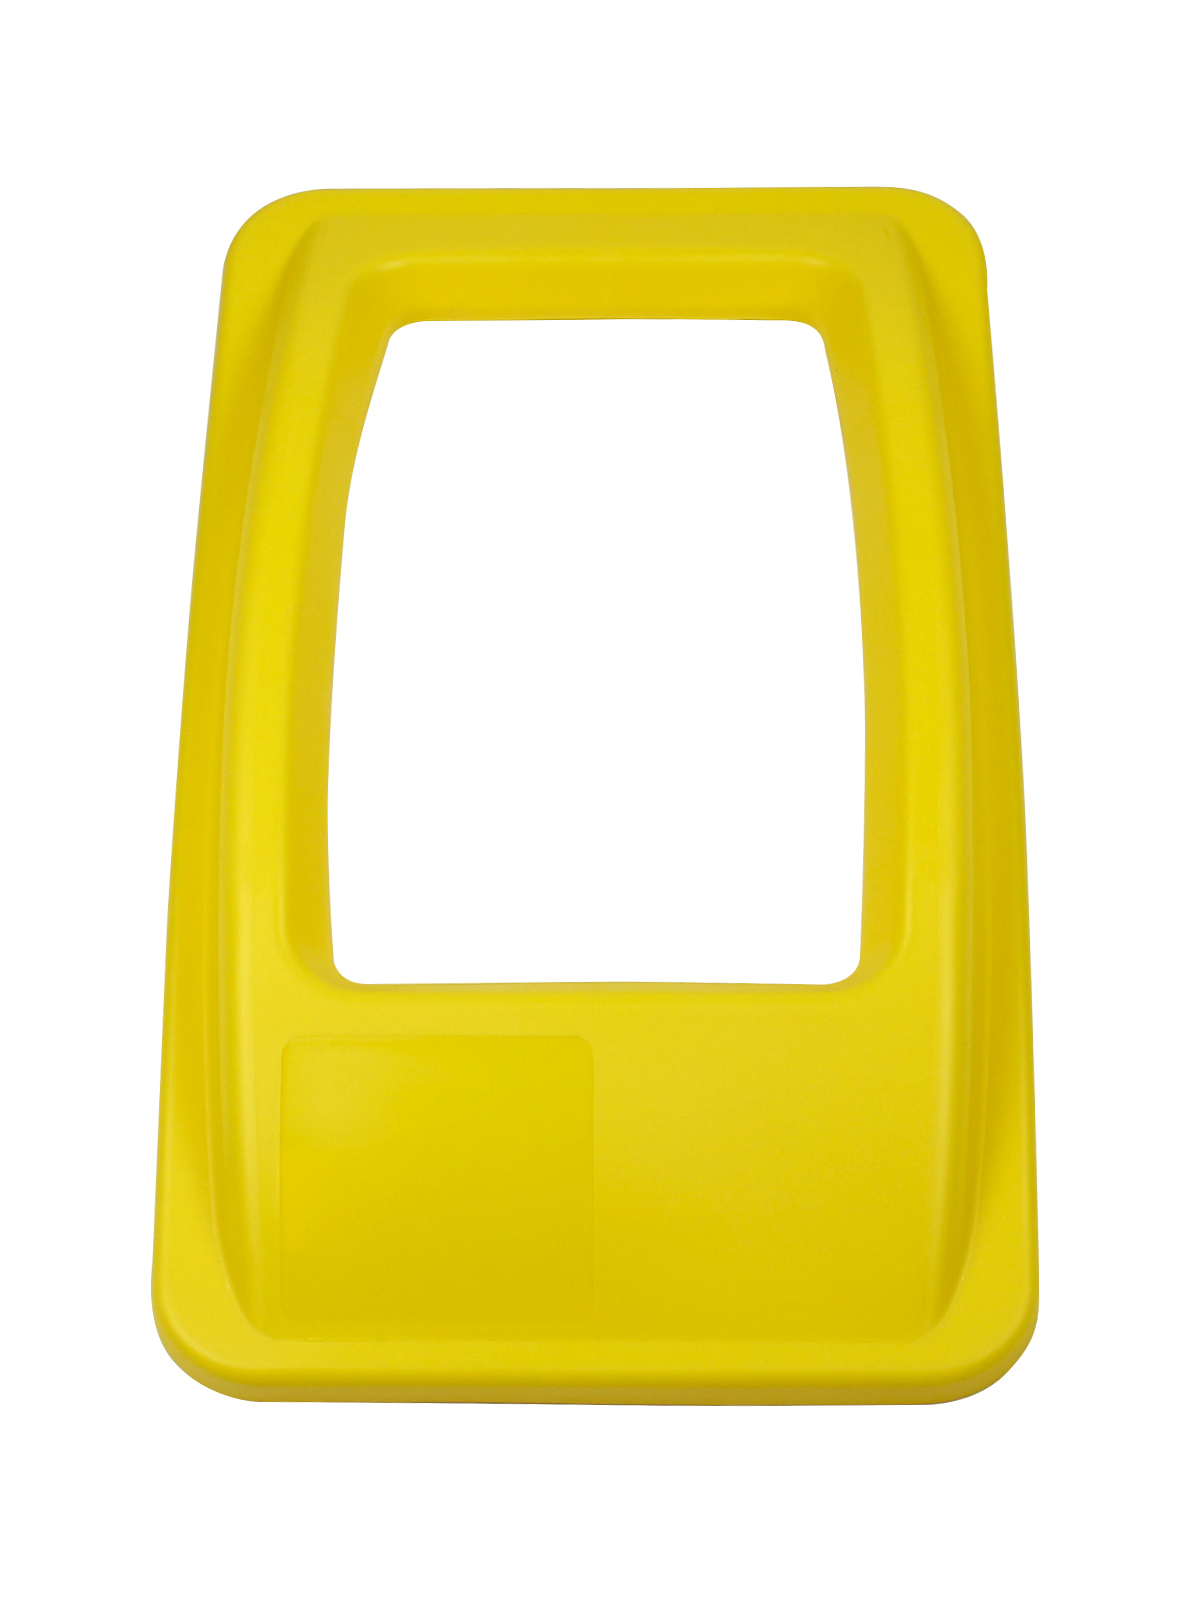 WASTE WATCHER - Lid - Full - Yellow